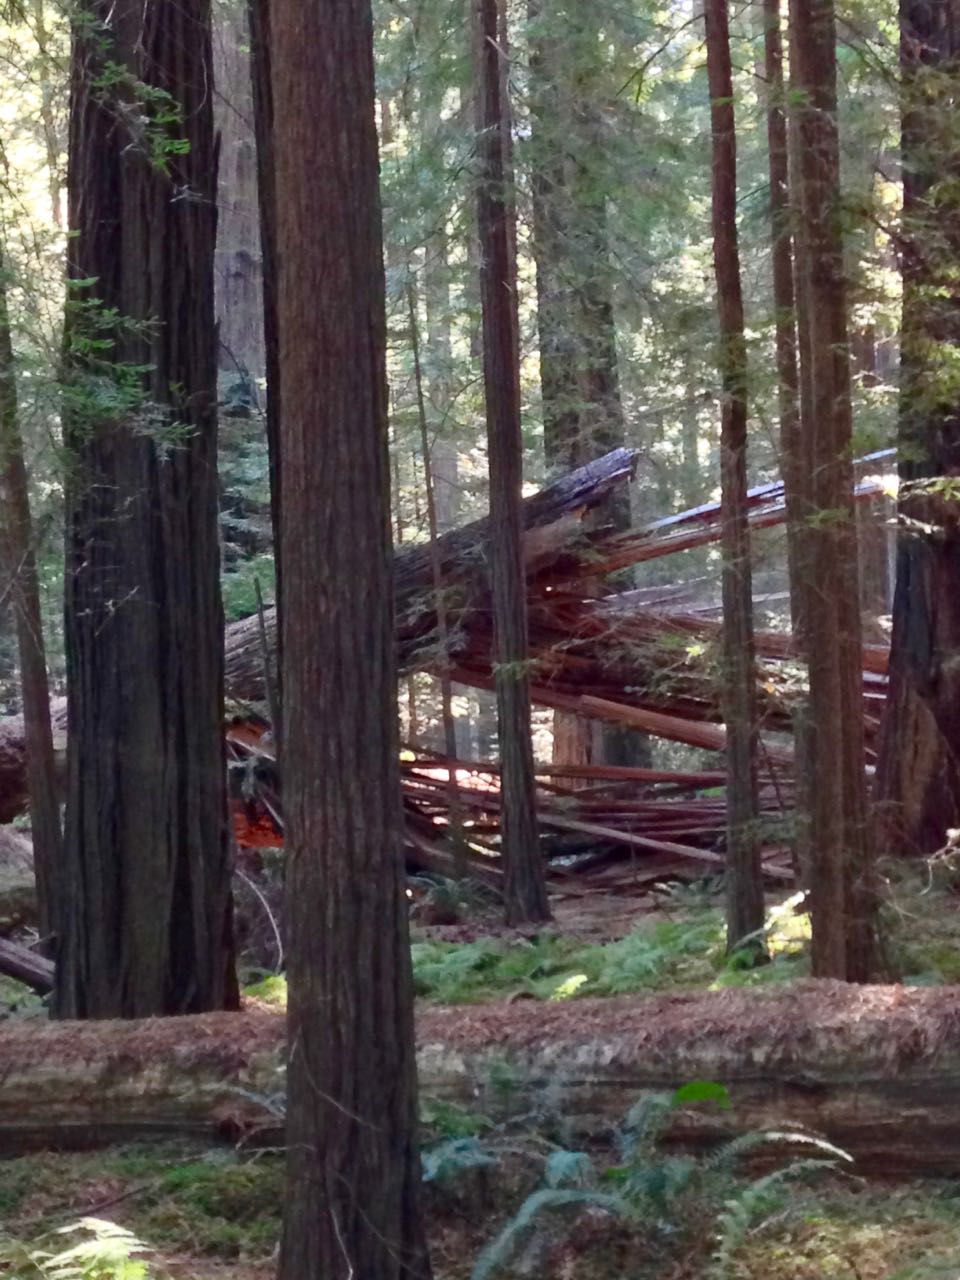 Redwoods 2017 10 08 20 Of 287